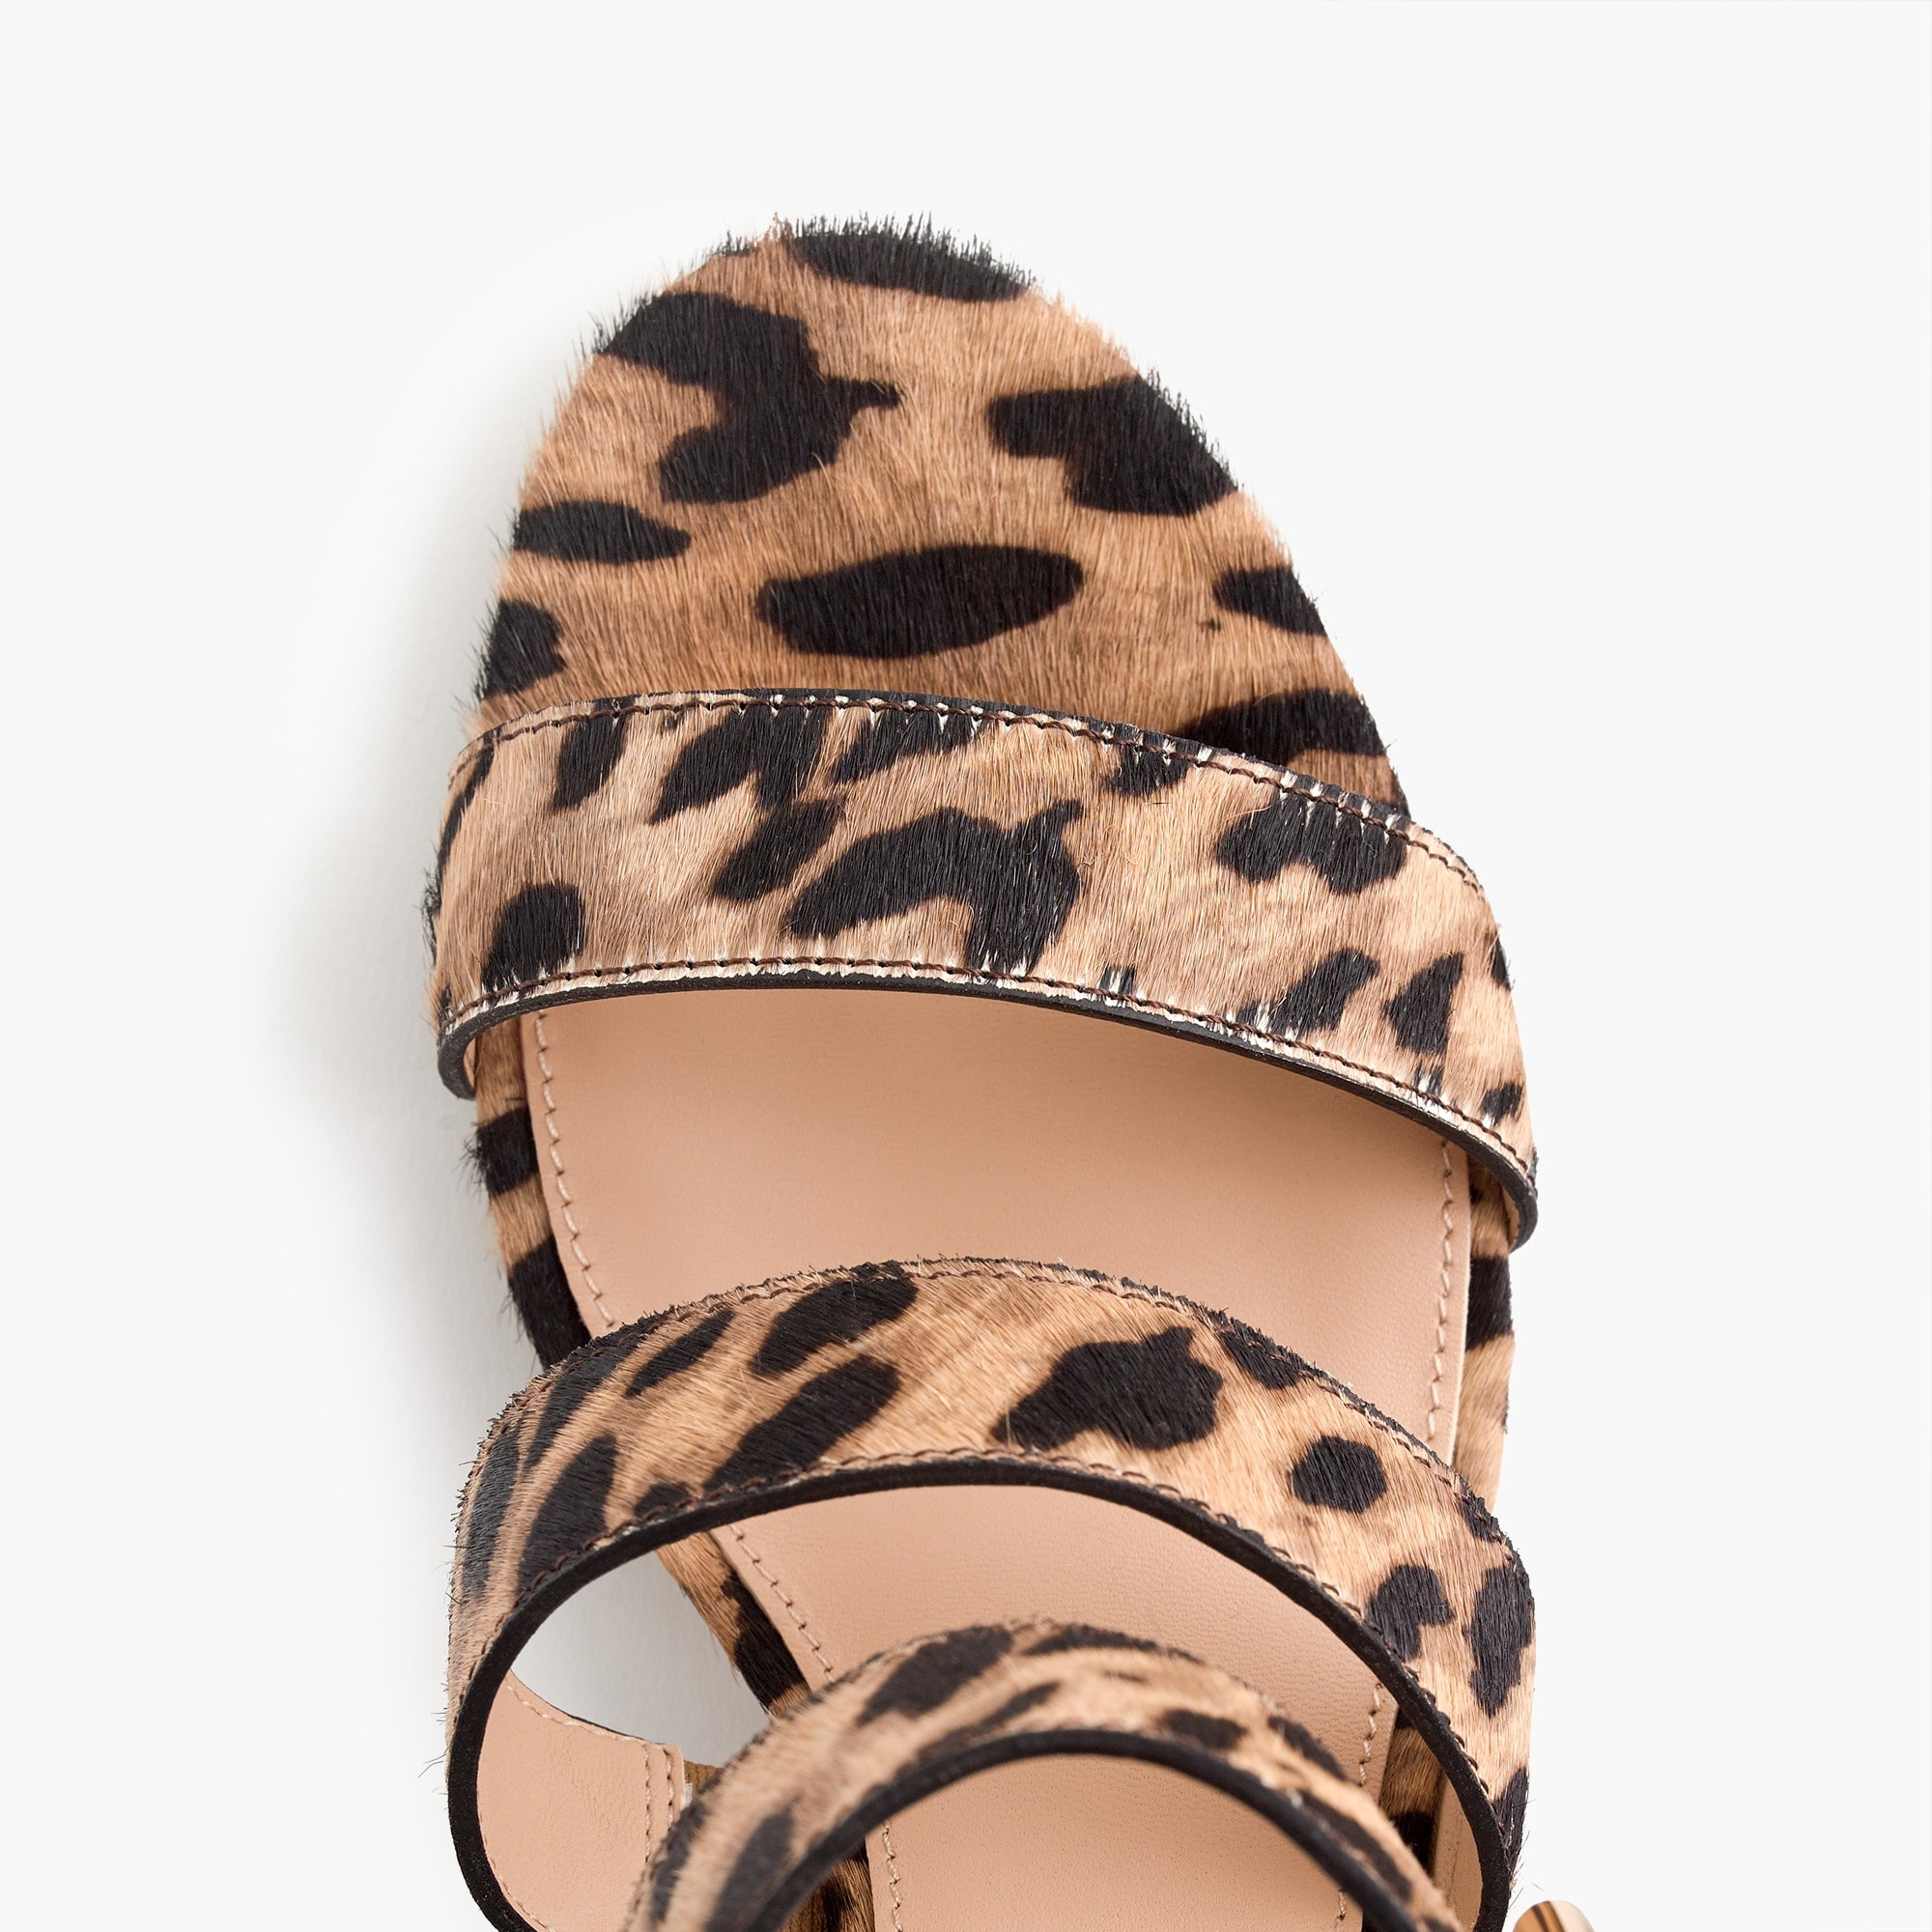 Image 2 for Three-strap sandals in leopard calf hair